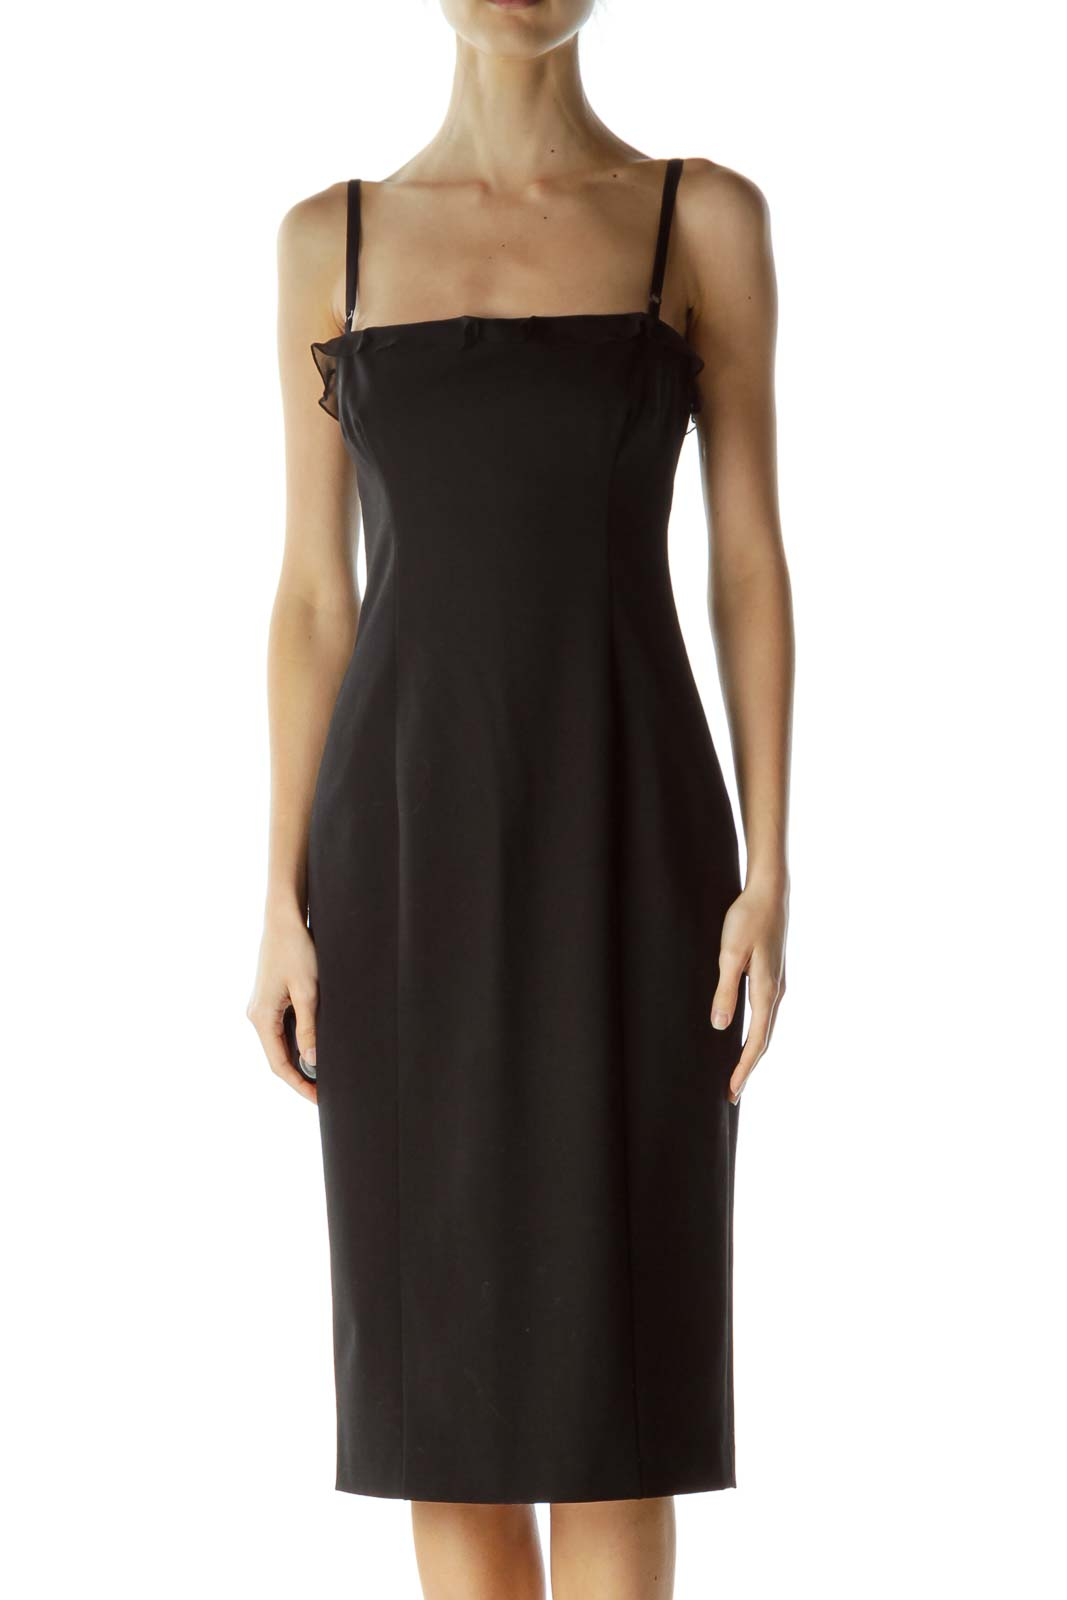 Black Spaghetti Strap Midi Cocktail Dress